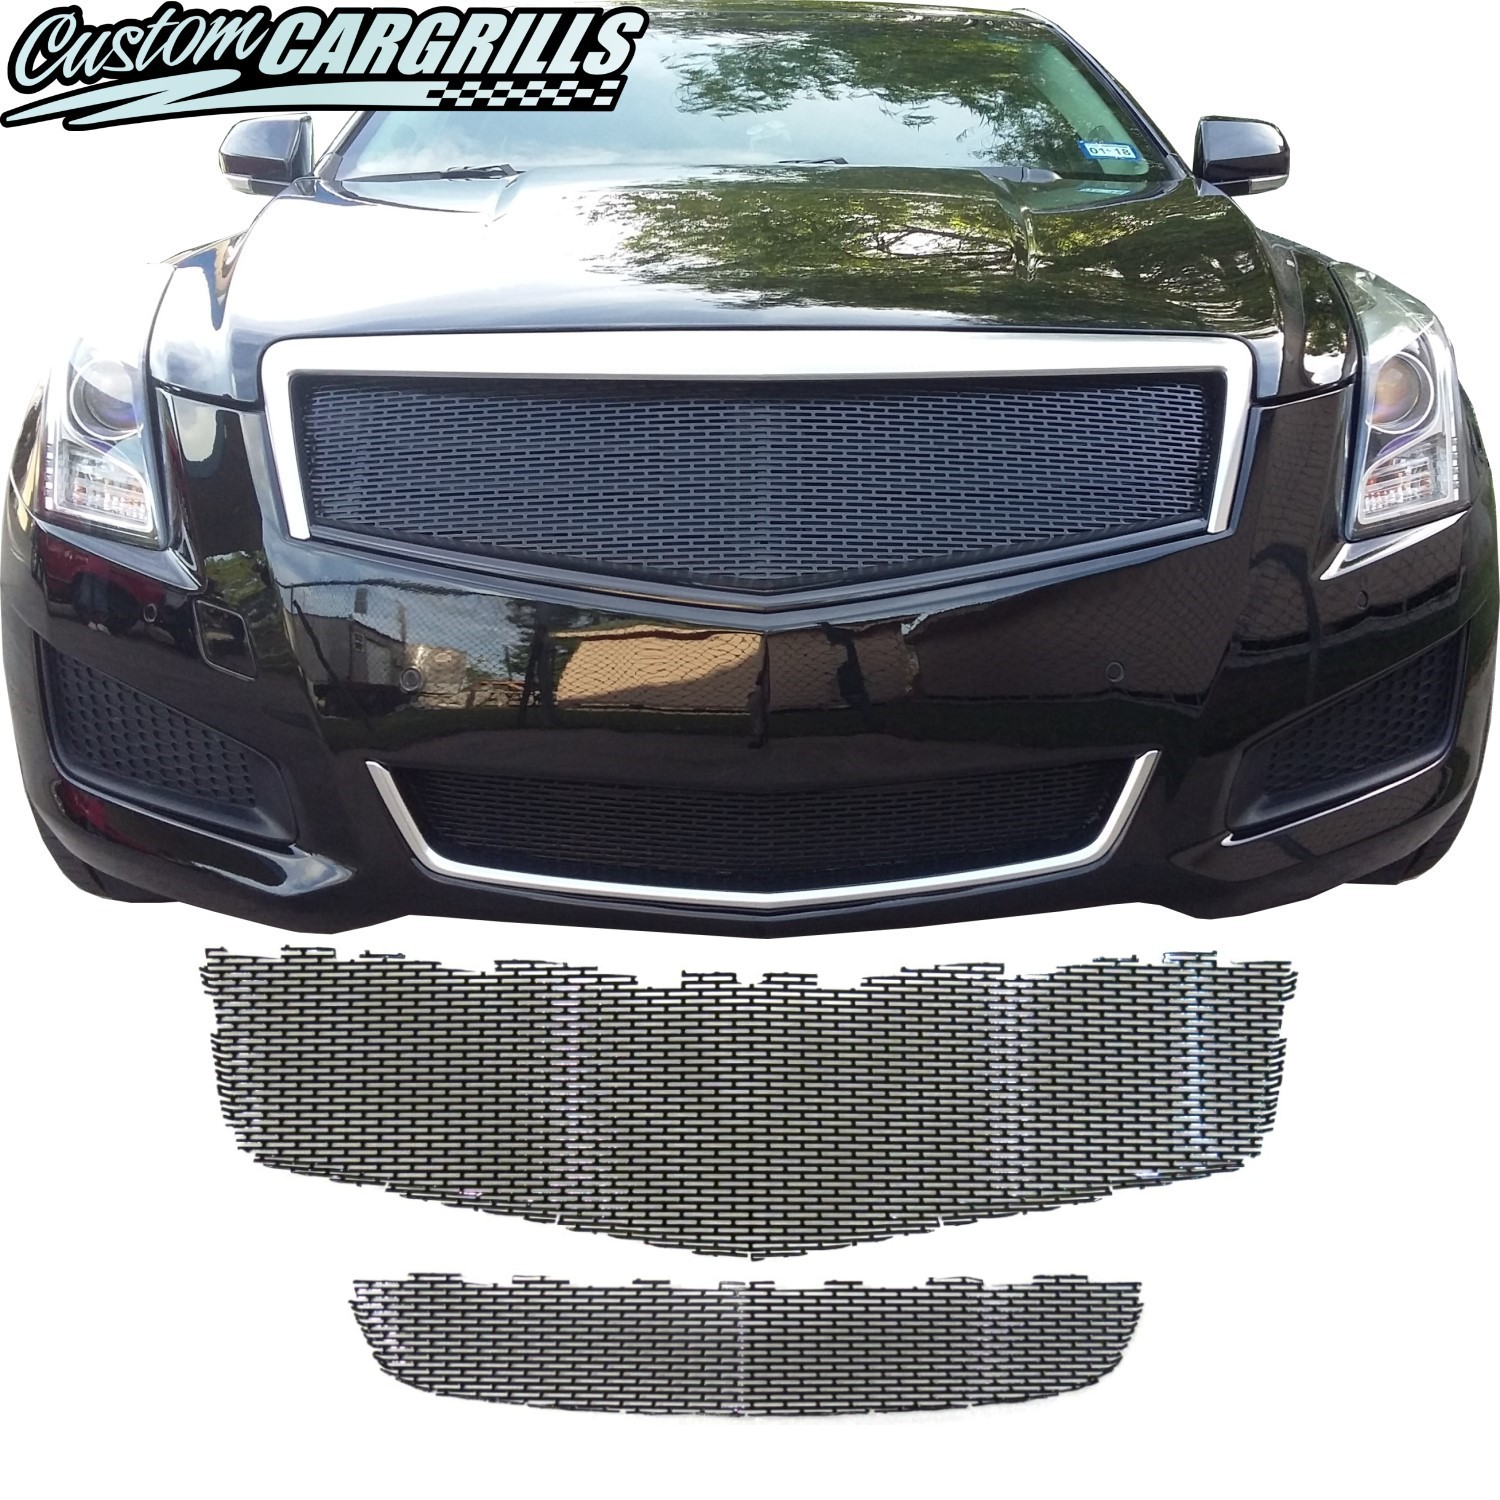 2013 - 2014 Cadillac ATS Top and Bottom Grill Mesh Set